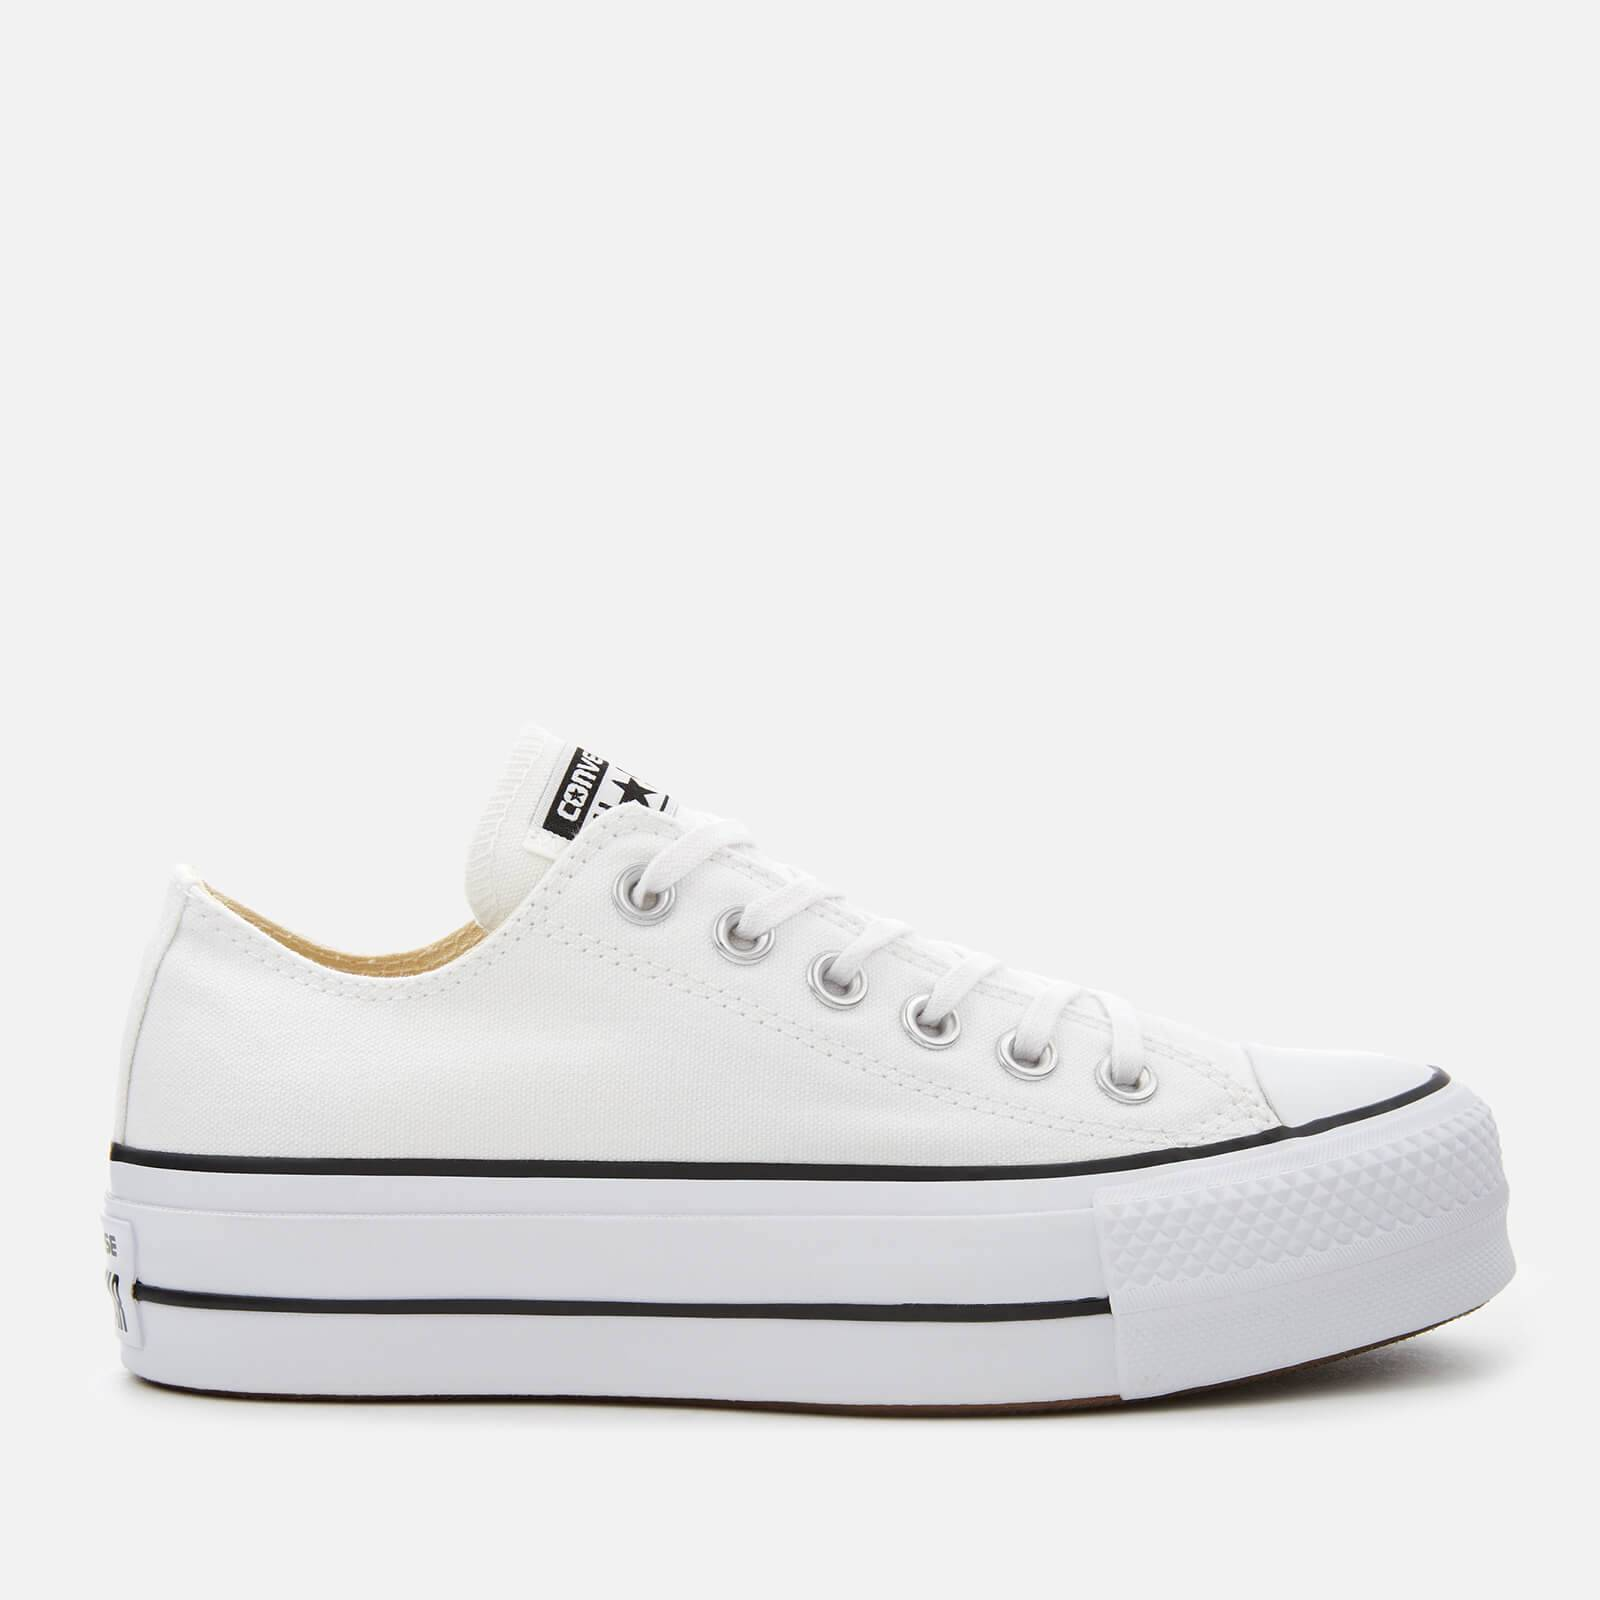 Converse Women's Chuck Taylor All Star Lift Ox Trainers - White/Black/White - UK 8